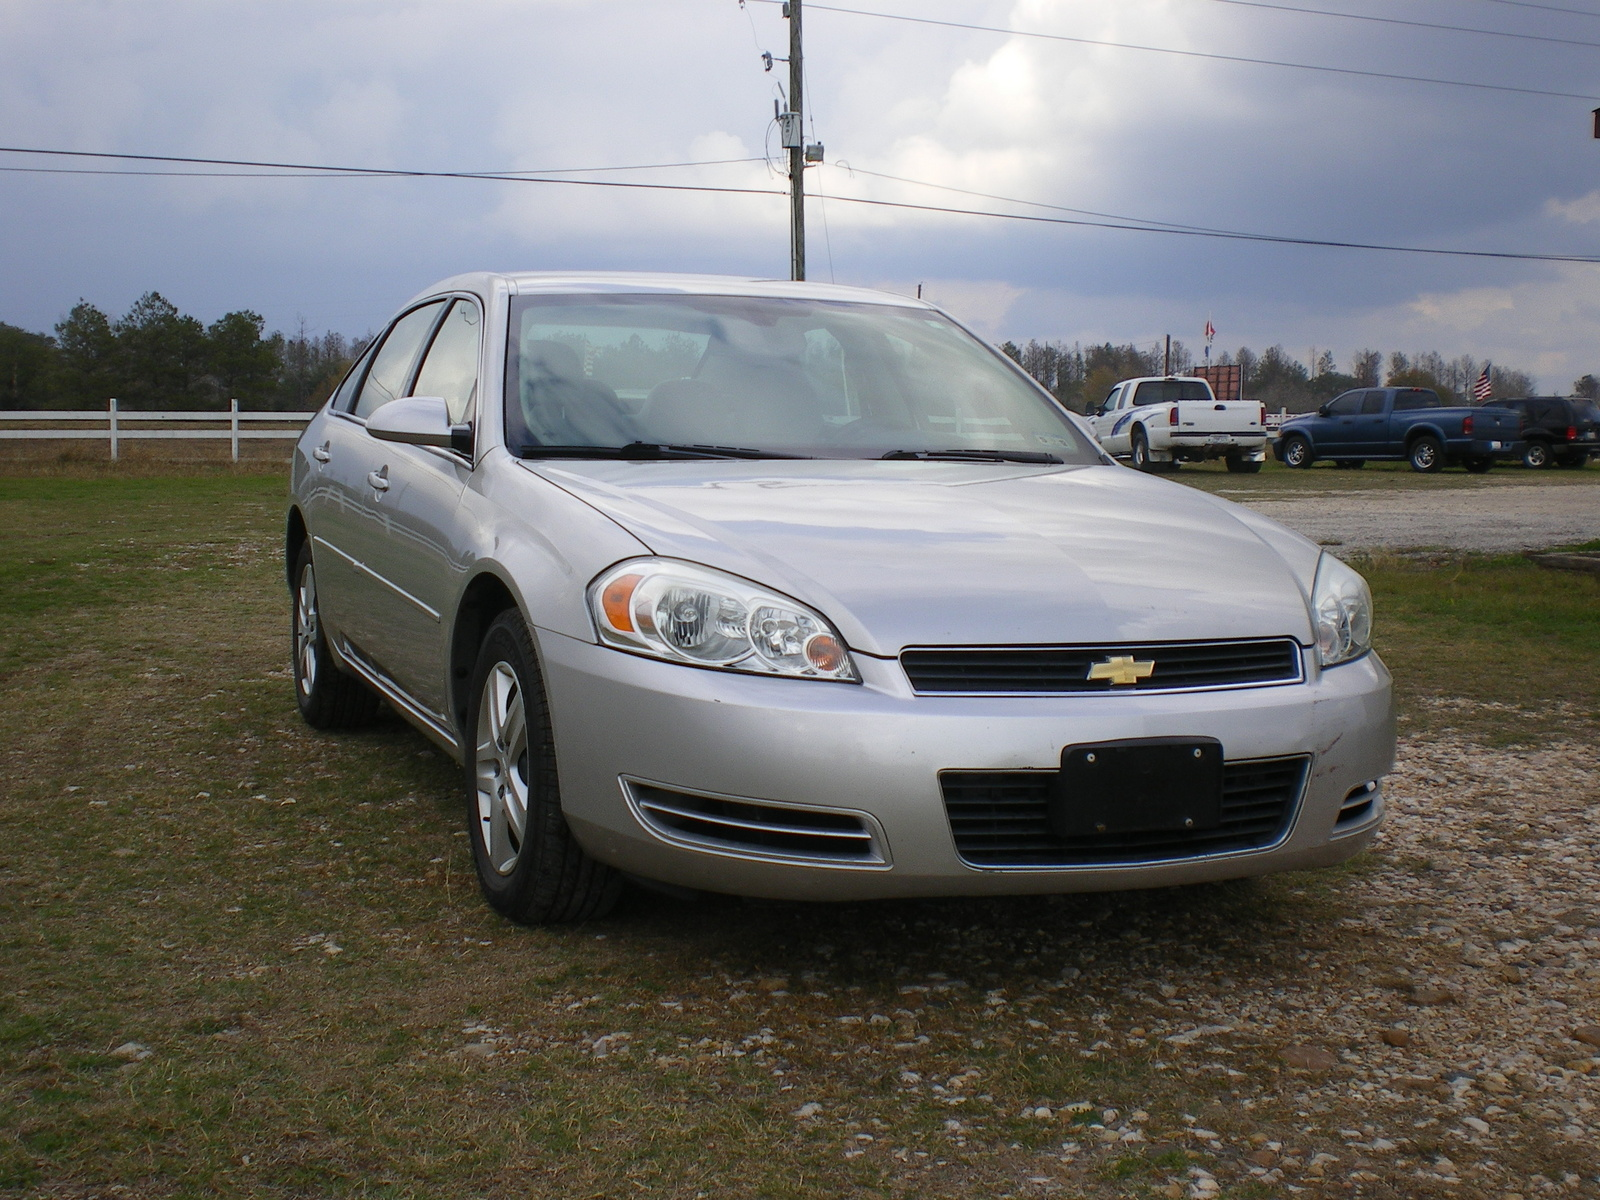 used 2006 chevrolet impala ss sedan exterior photos. Black Bedroom Furniture Sets. Home Design Ideas